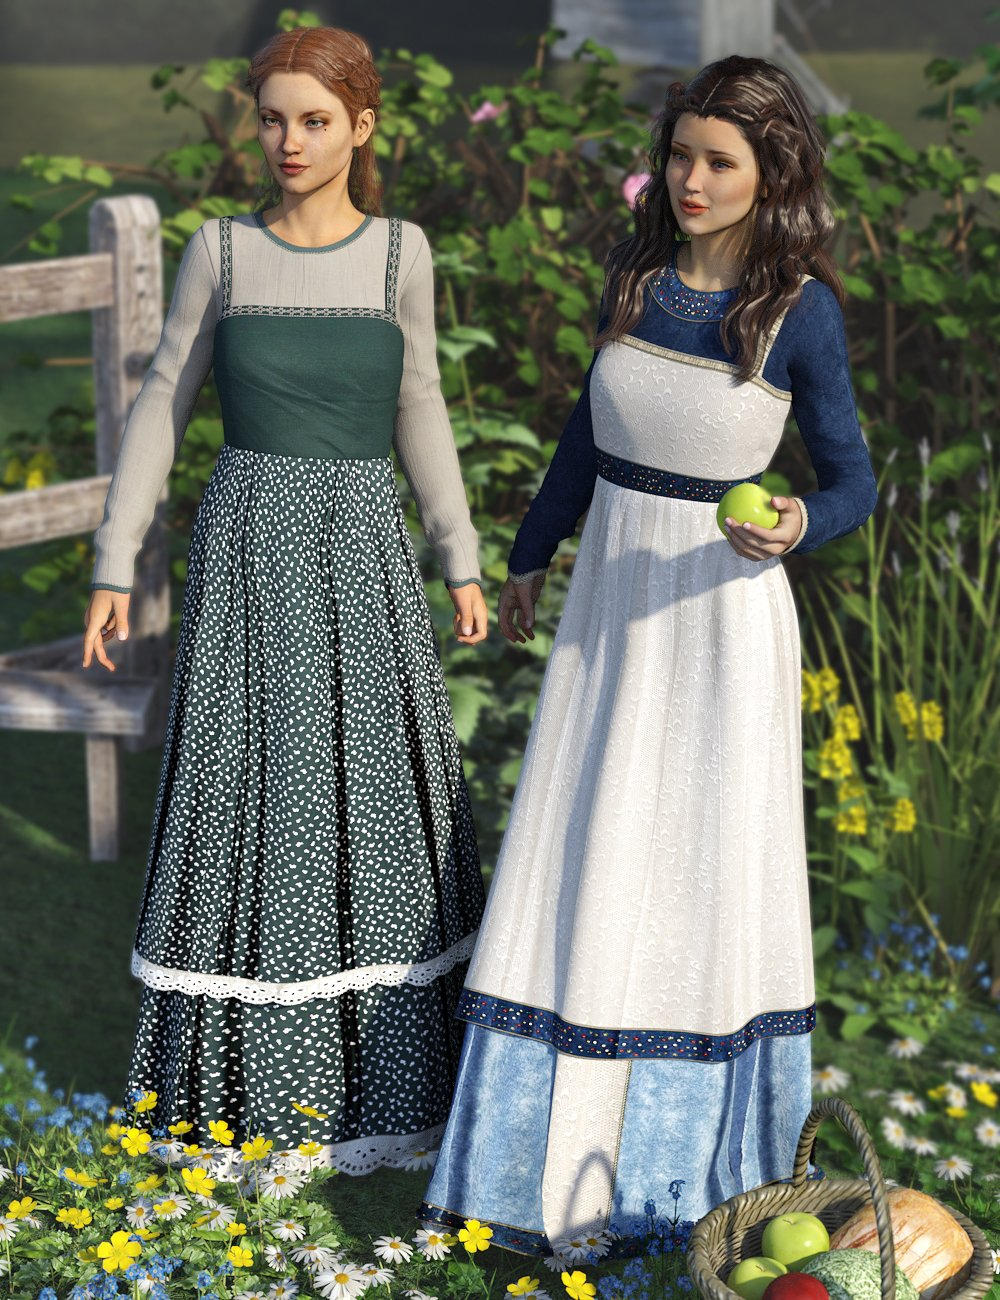 Simple Peasantry by: Sarsa, 3D Models by Daz 3D